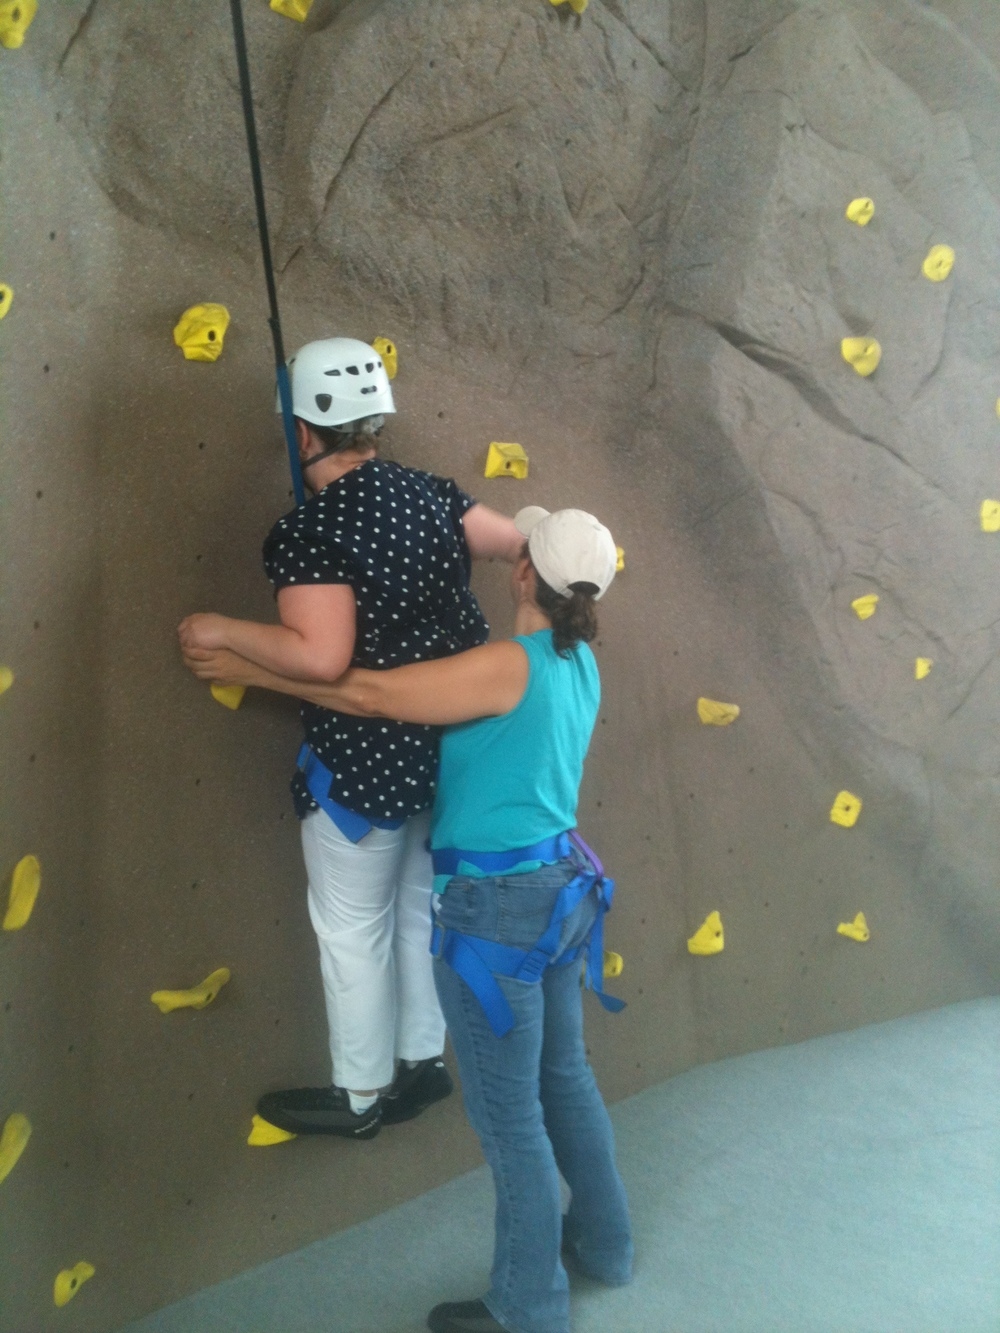 Mariya (STEP student) and Danielle (Counselor) climb the rock wall at the LaTech Gym.